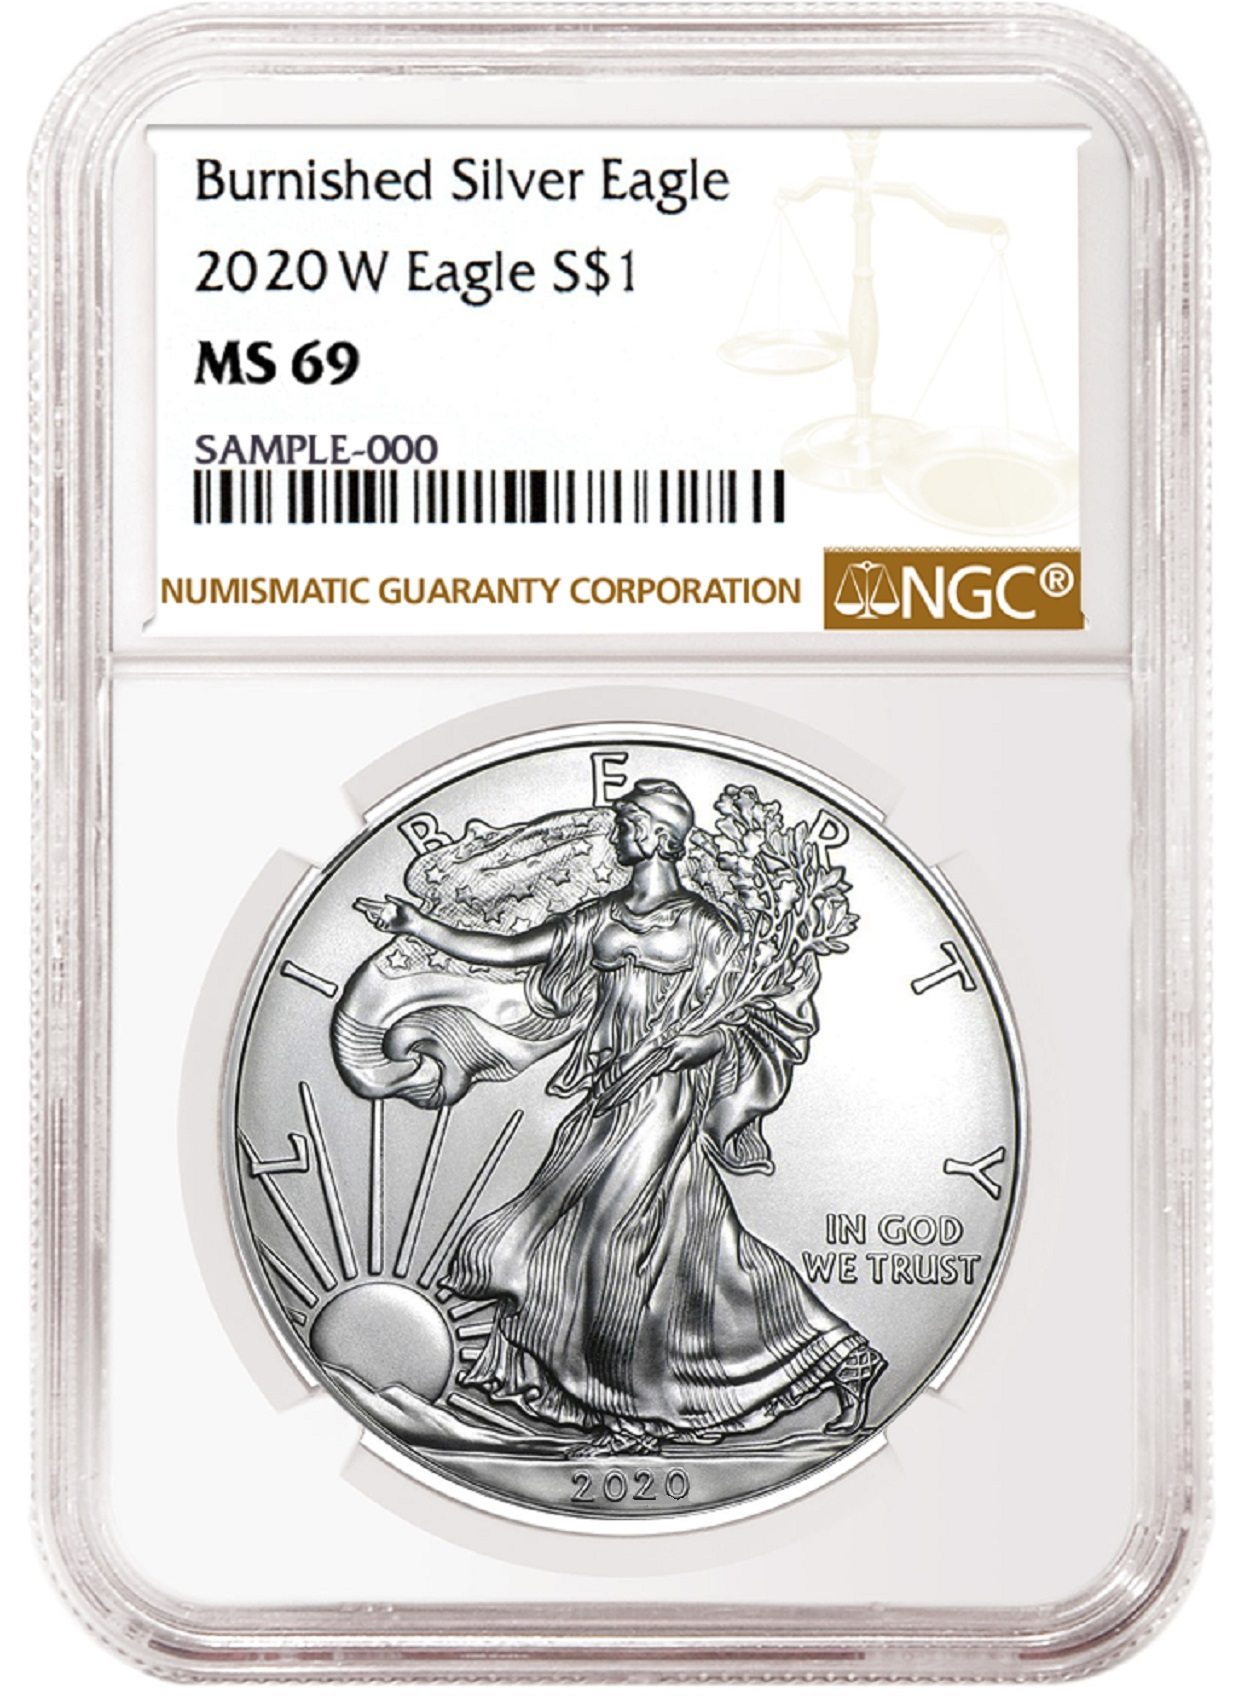 2020 W Burnished Silver Eagle NGC MS69 Brown Label